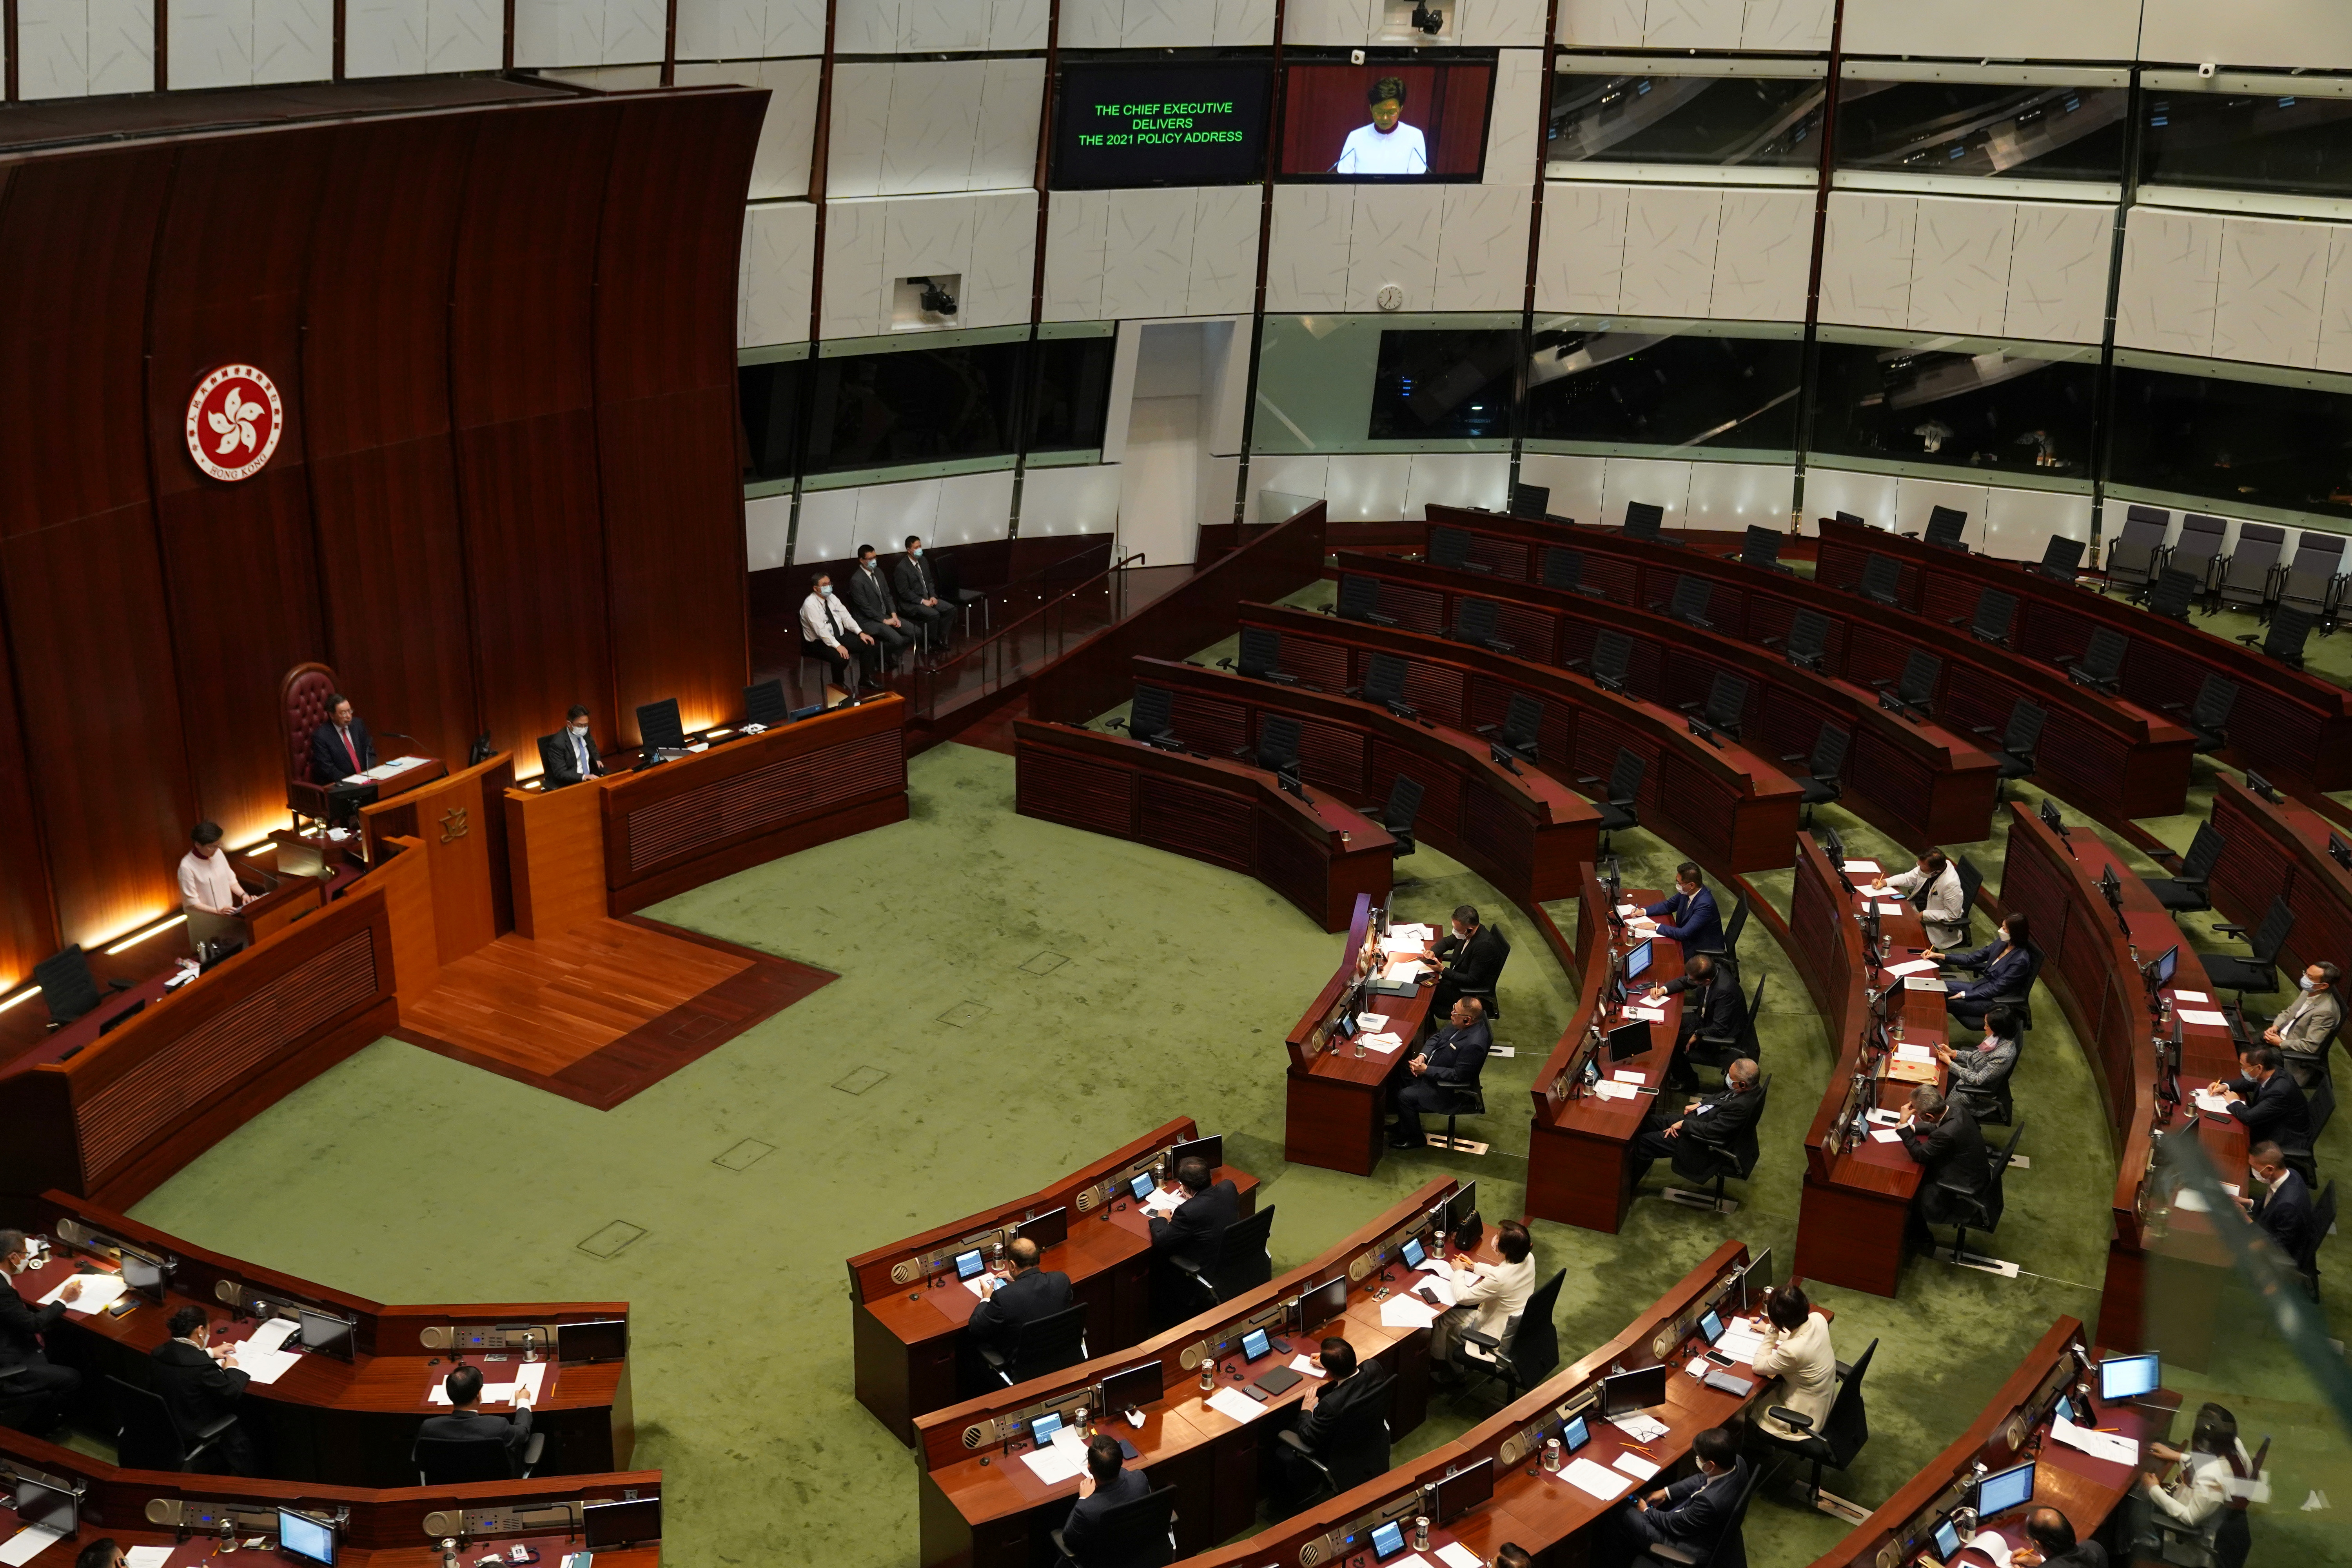 Empty seats of pro-democracy lawmakers are seen as Hong Kong Chief Executive Carrie Lam delivers her annual policy address at the Legislative Council in Hong Kong, China October 6, 2021. REUTERS/Lam Yik